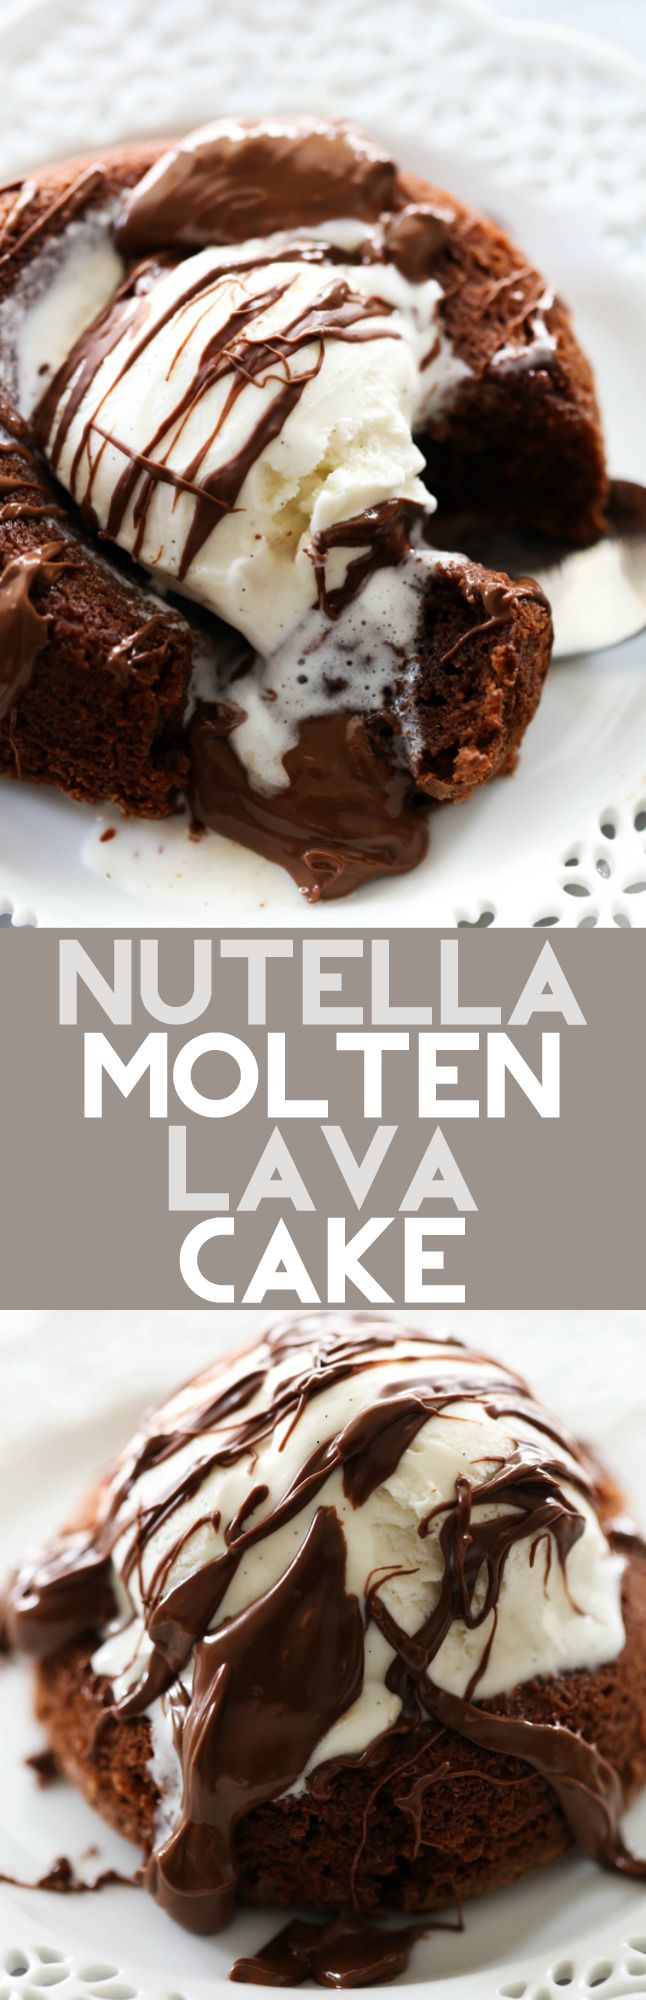 Fudge lava cake recipe